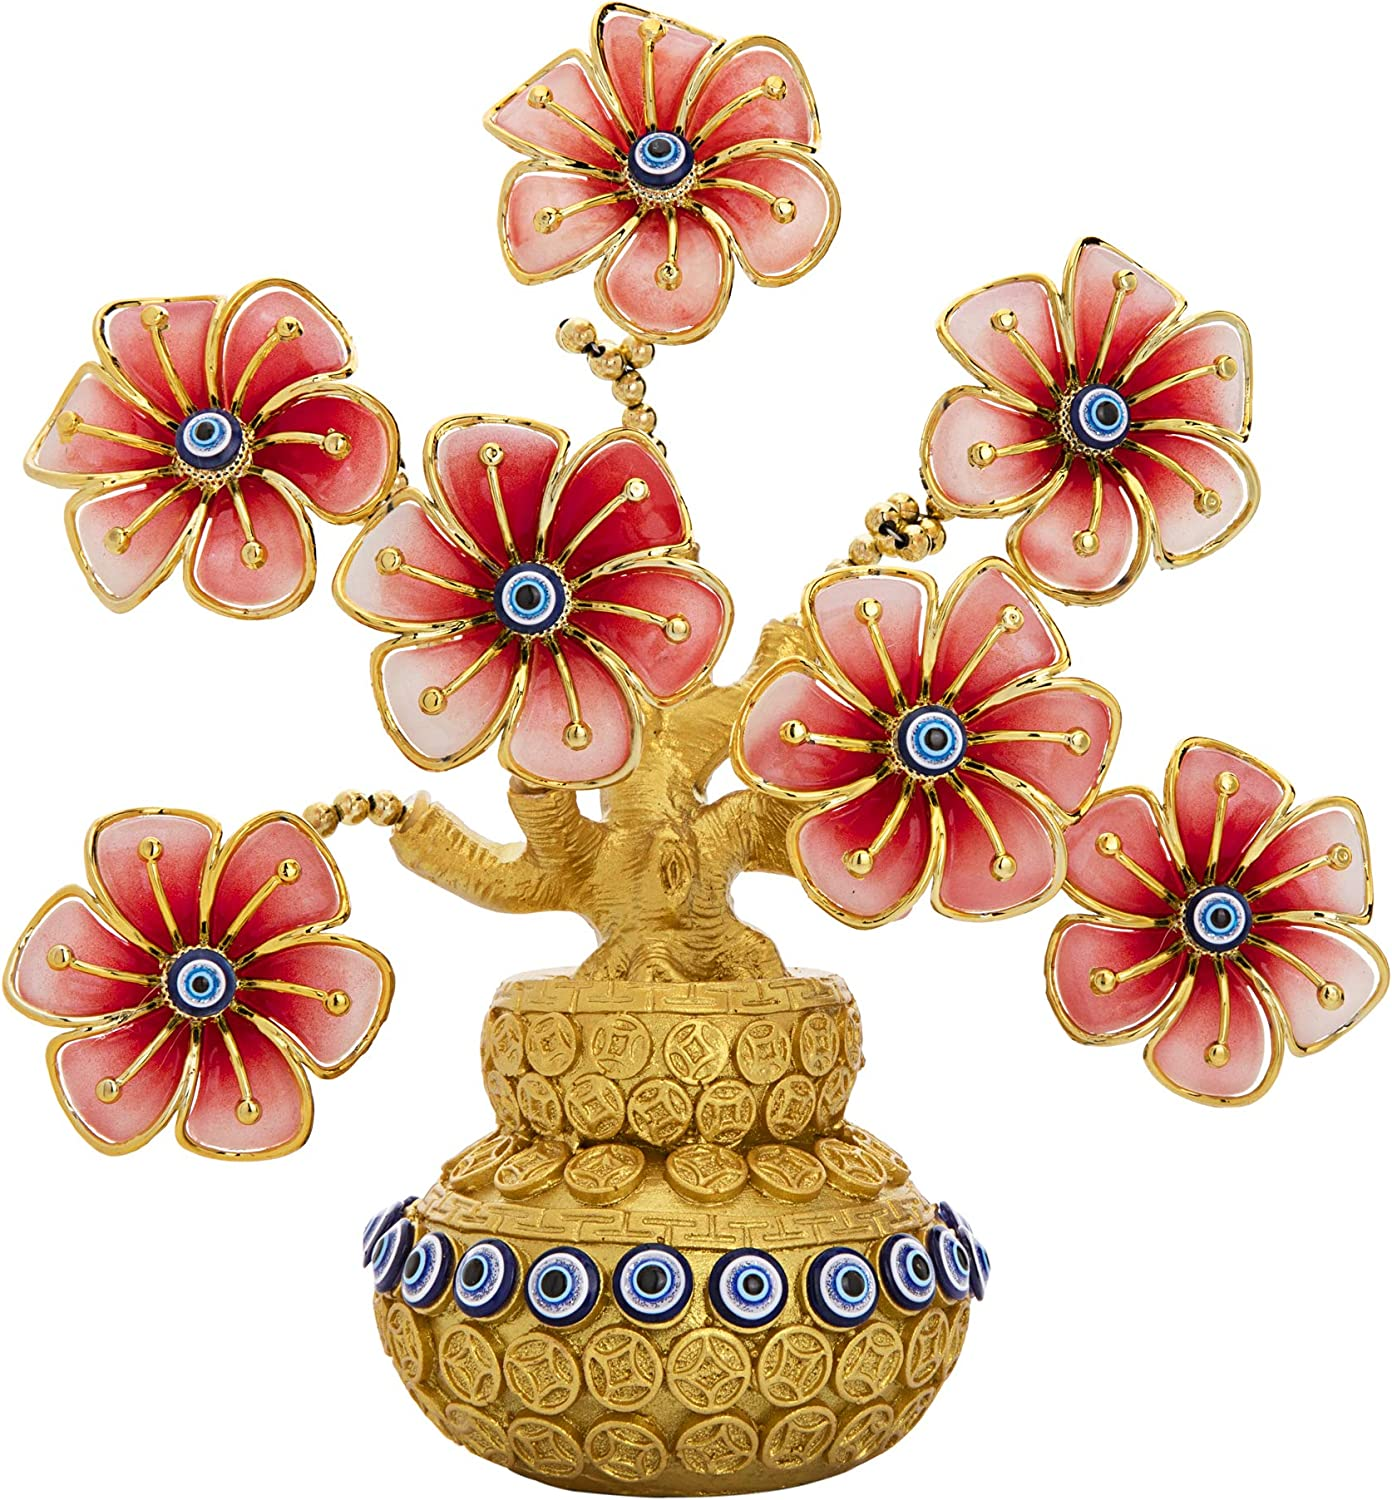 YU FENG Turkish Evil Eye Flowers Money Tree Ornament for Good Luck Wealth Prosperity Home Office Decor Fengshui Protection Gift